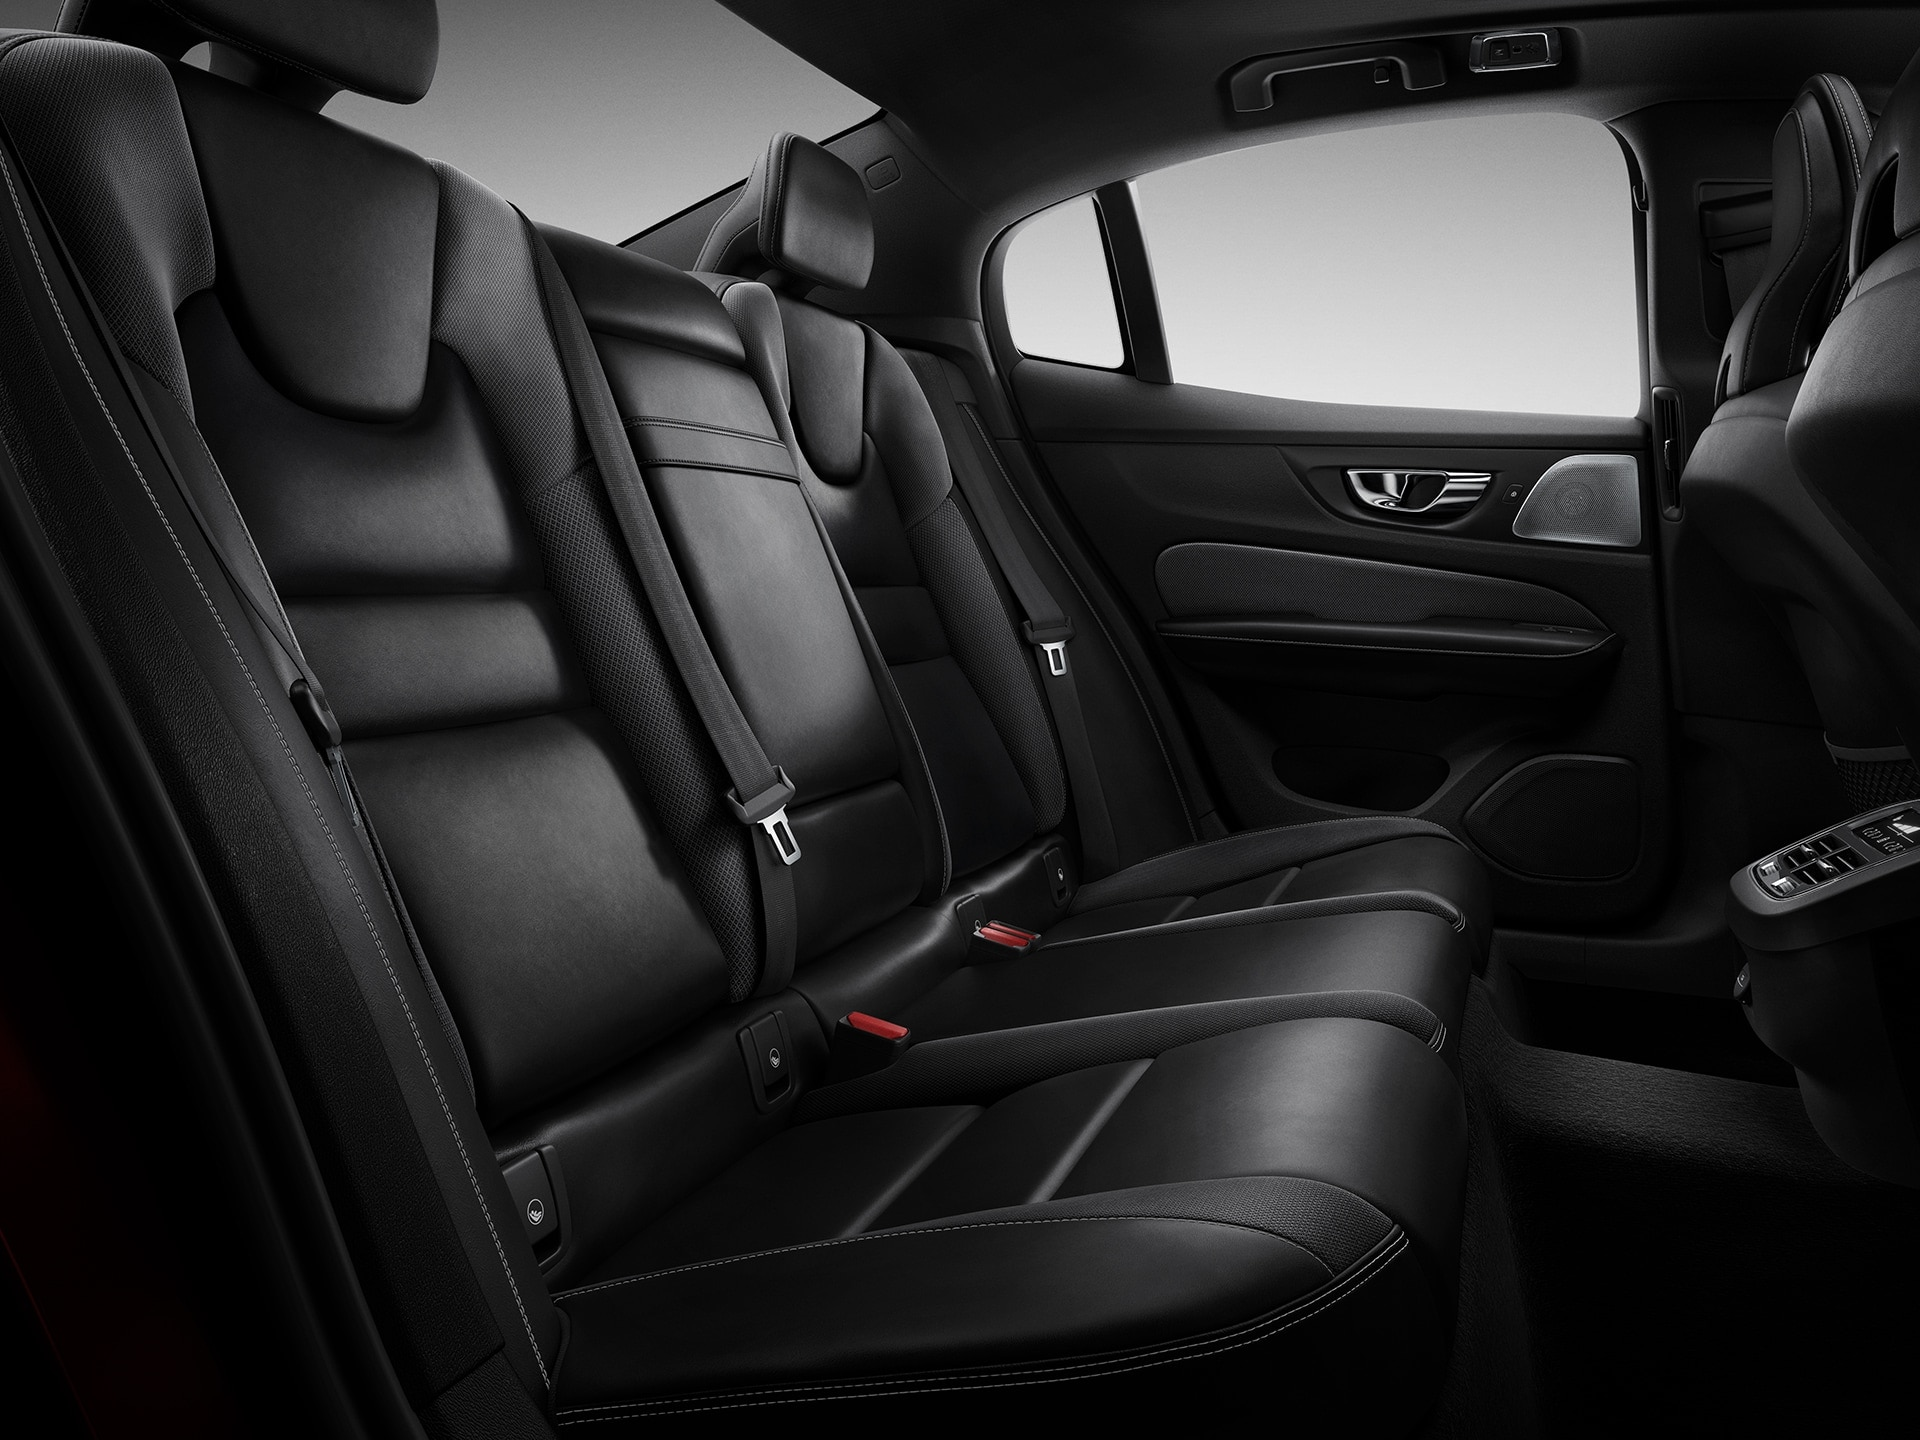 Interior of a back seat of a S60 with black leather seats